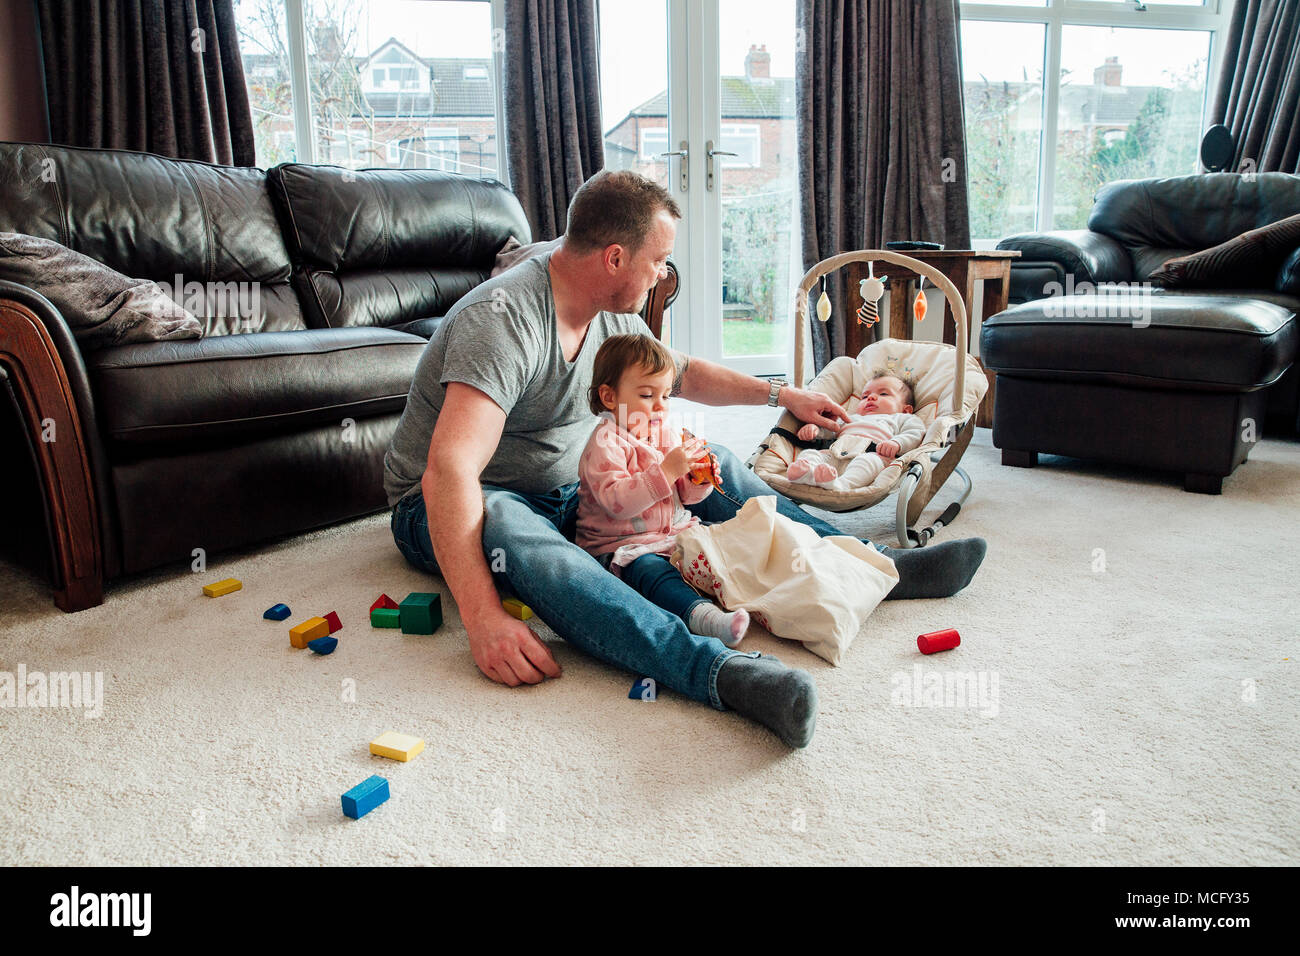 Stay at home father with his daughters at home. The eldest girl is sitting with her father playing with toy dinosaurs while the baby girl is in her ro - Stock Image